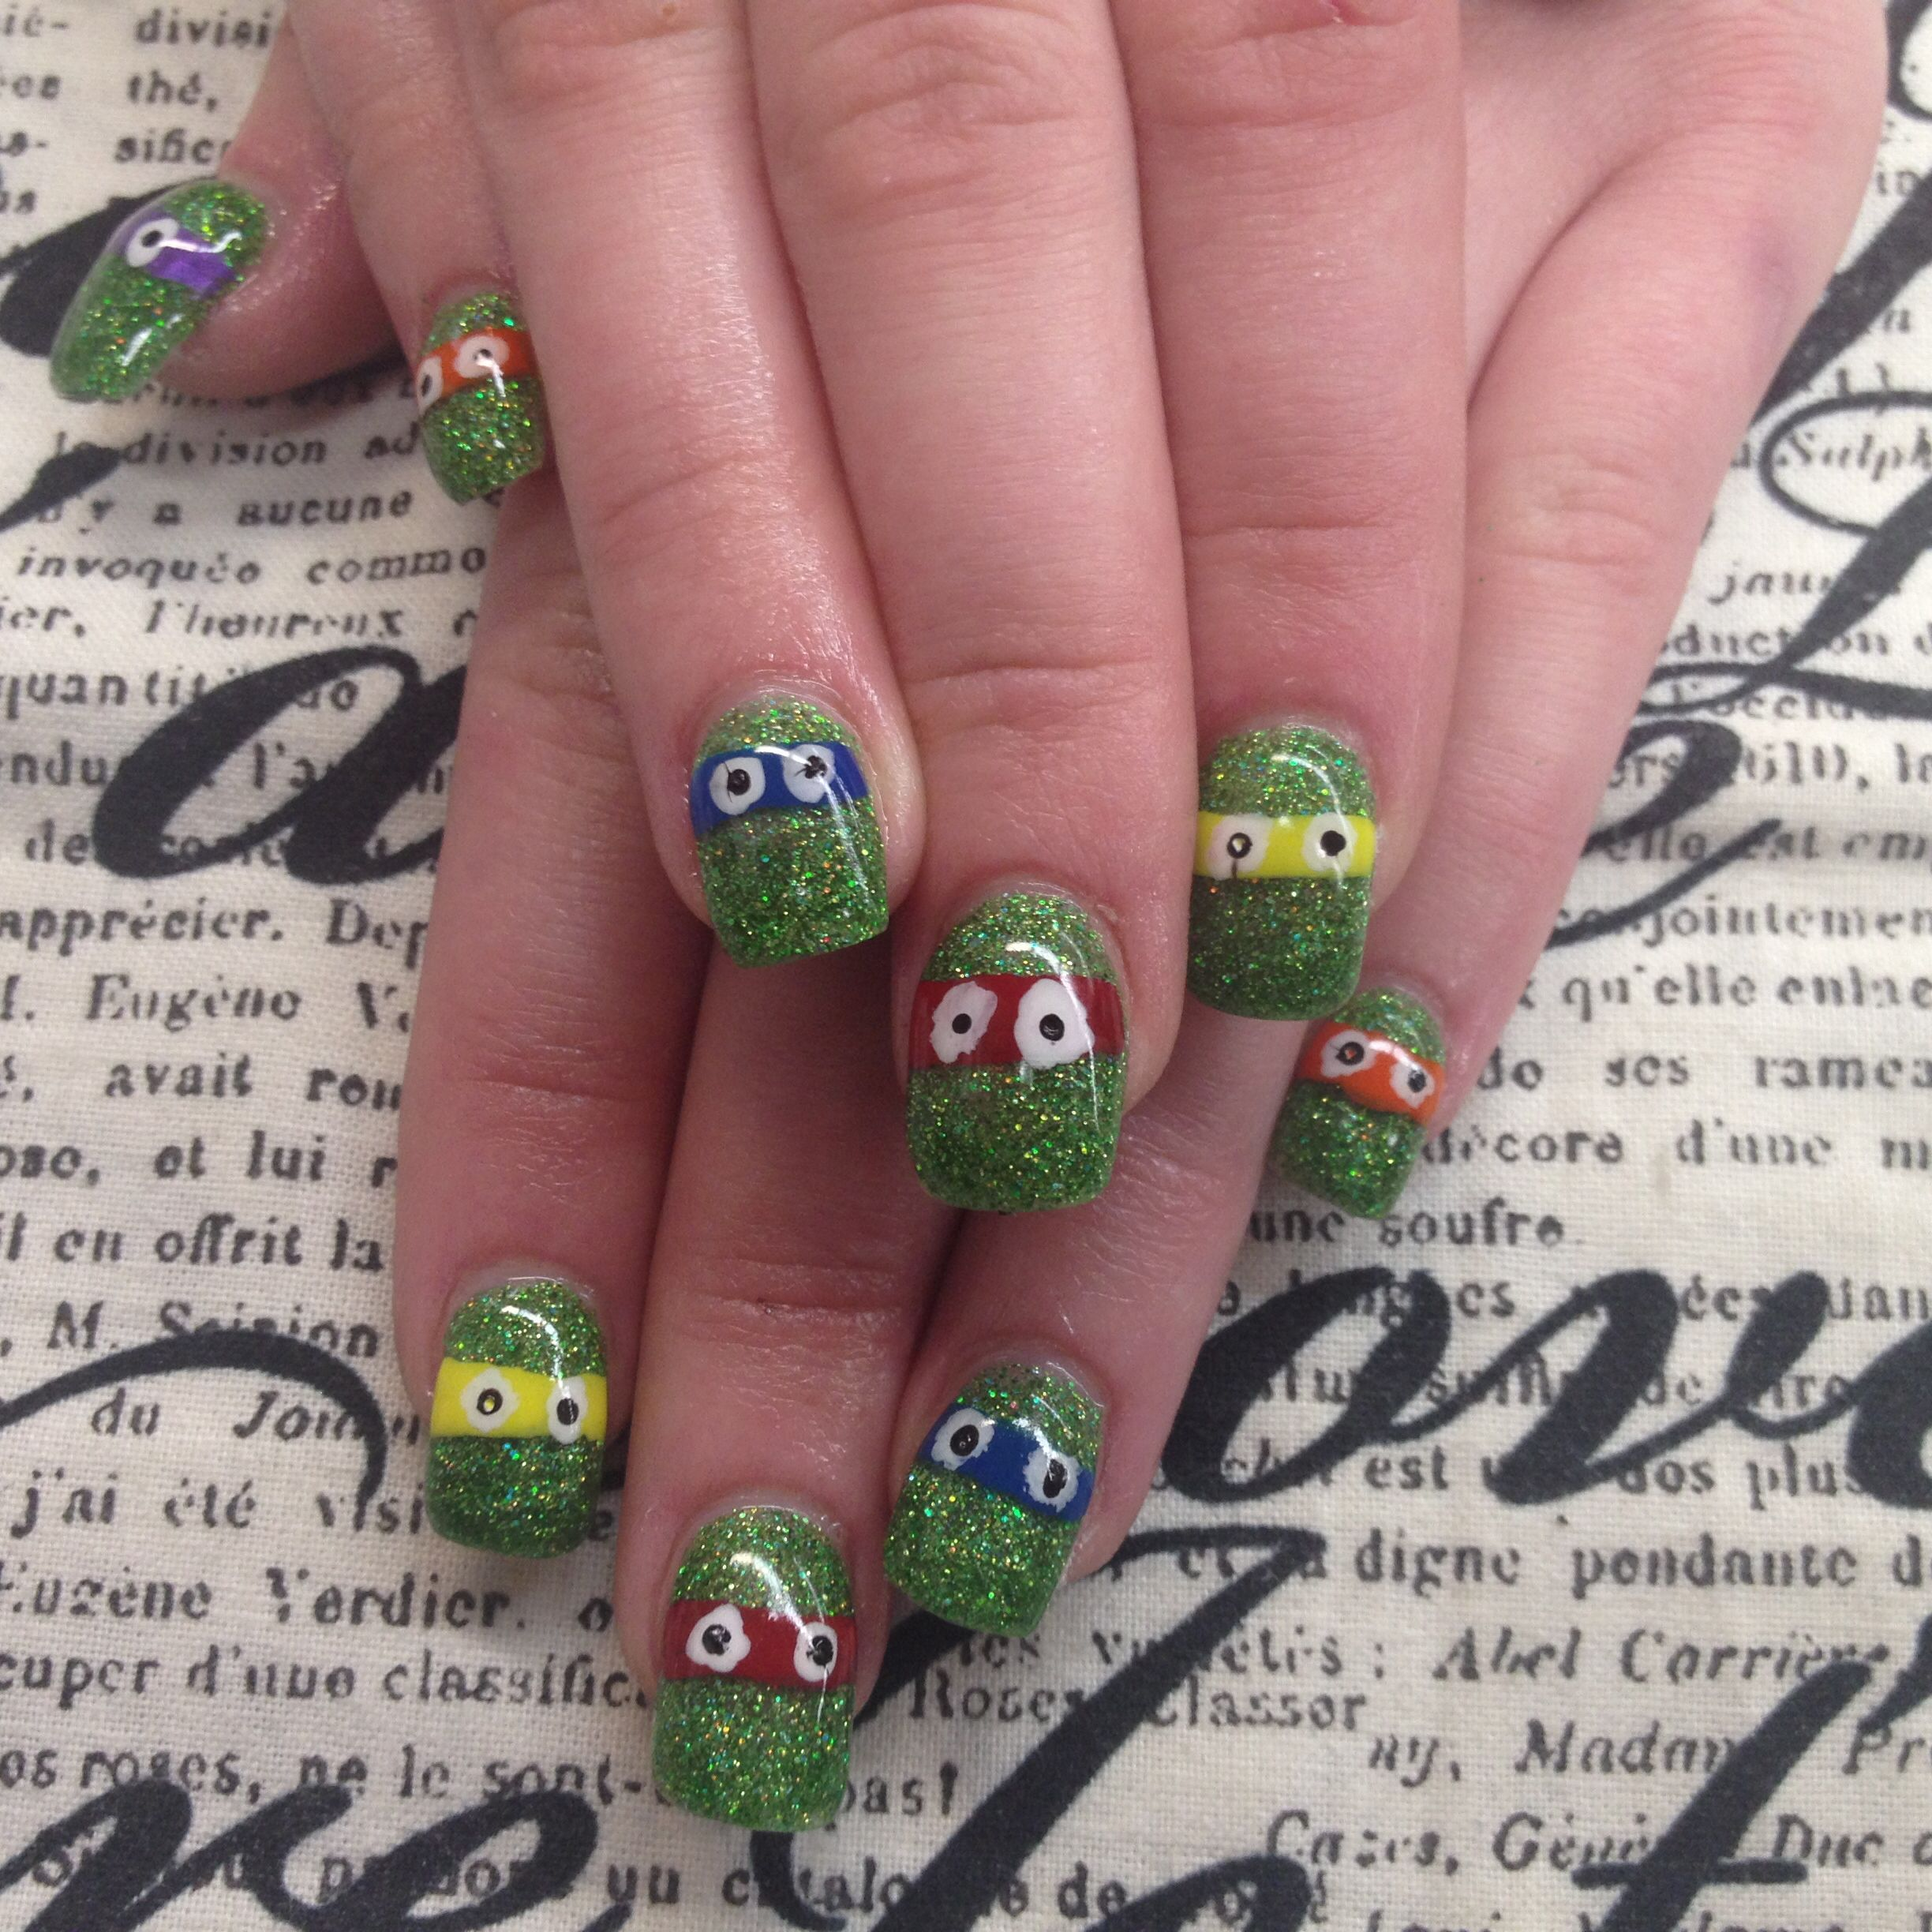 Ninja turtle nails | Nail design | Pinterest | Ninja turtle nails ...